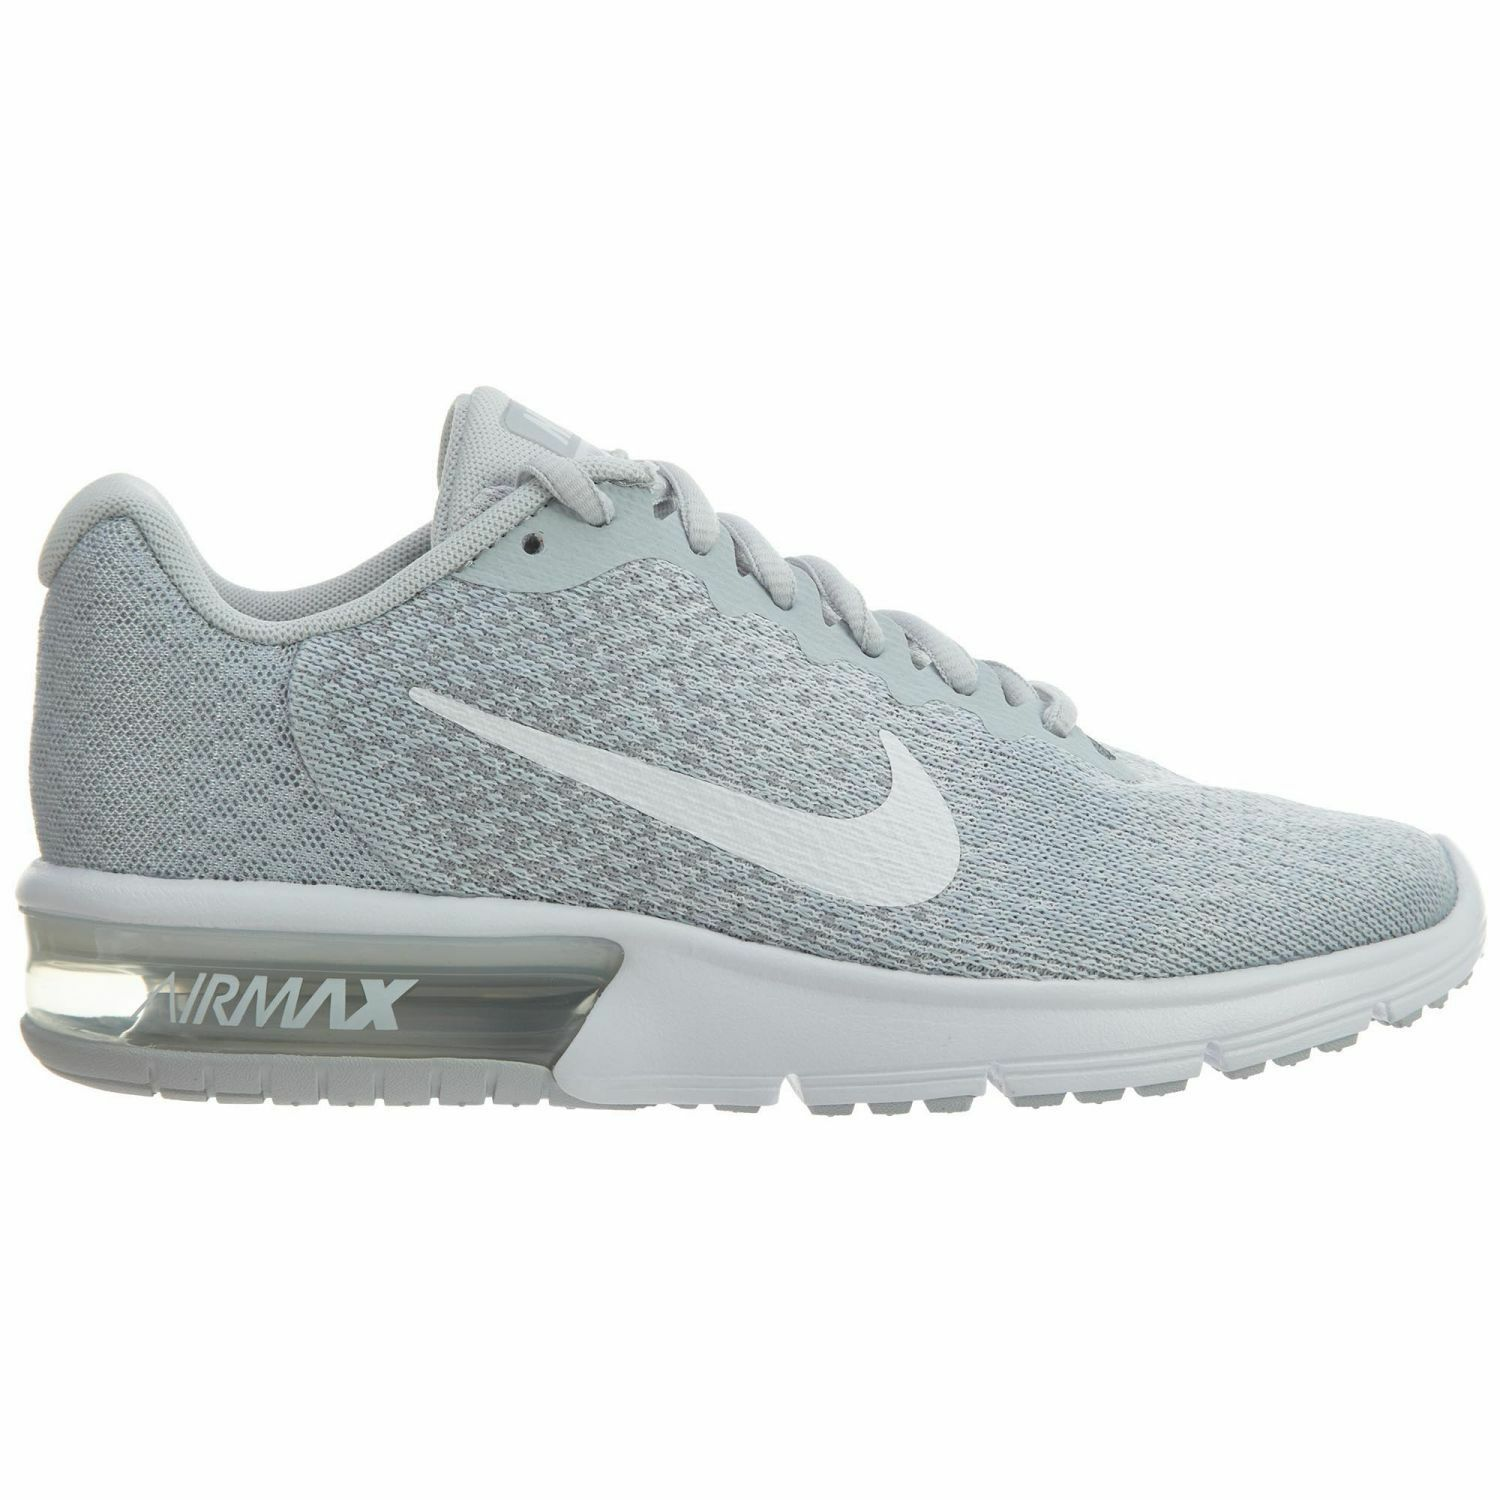 Nike Air Max Sequent 2 Womens 852465-007 Platinum Grey Running shoes Size 7